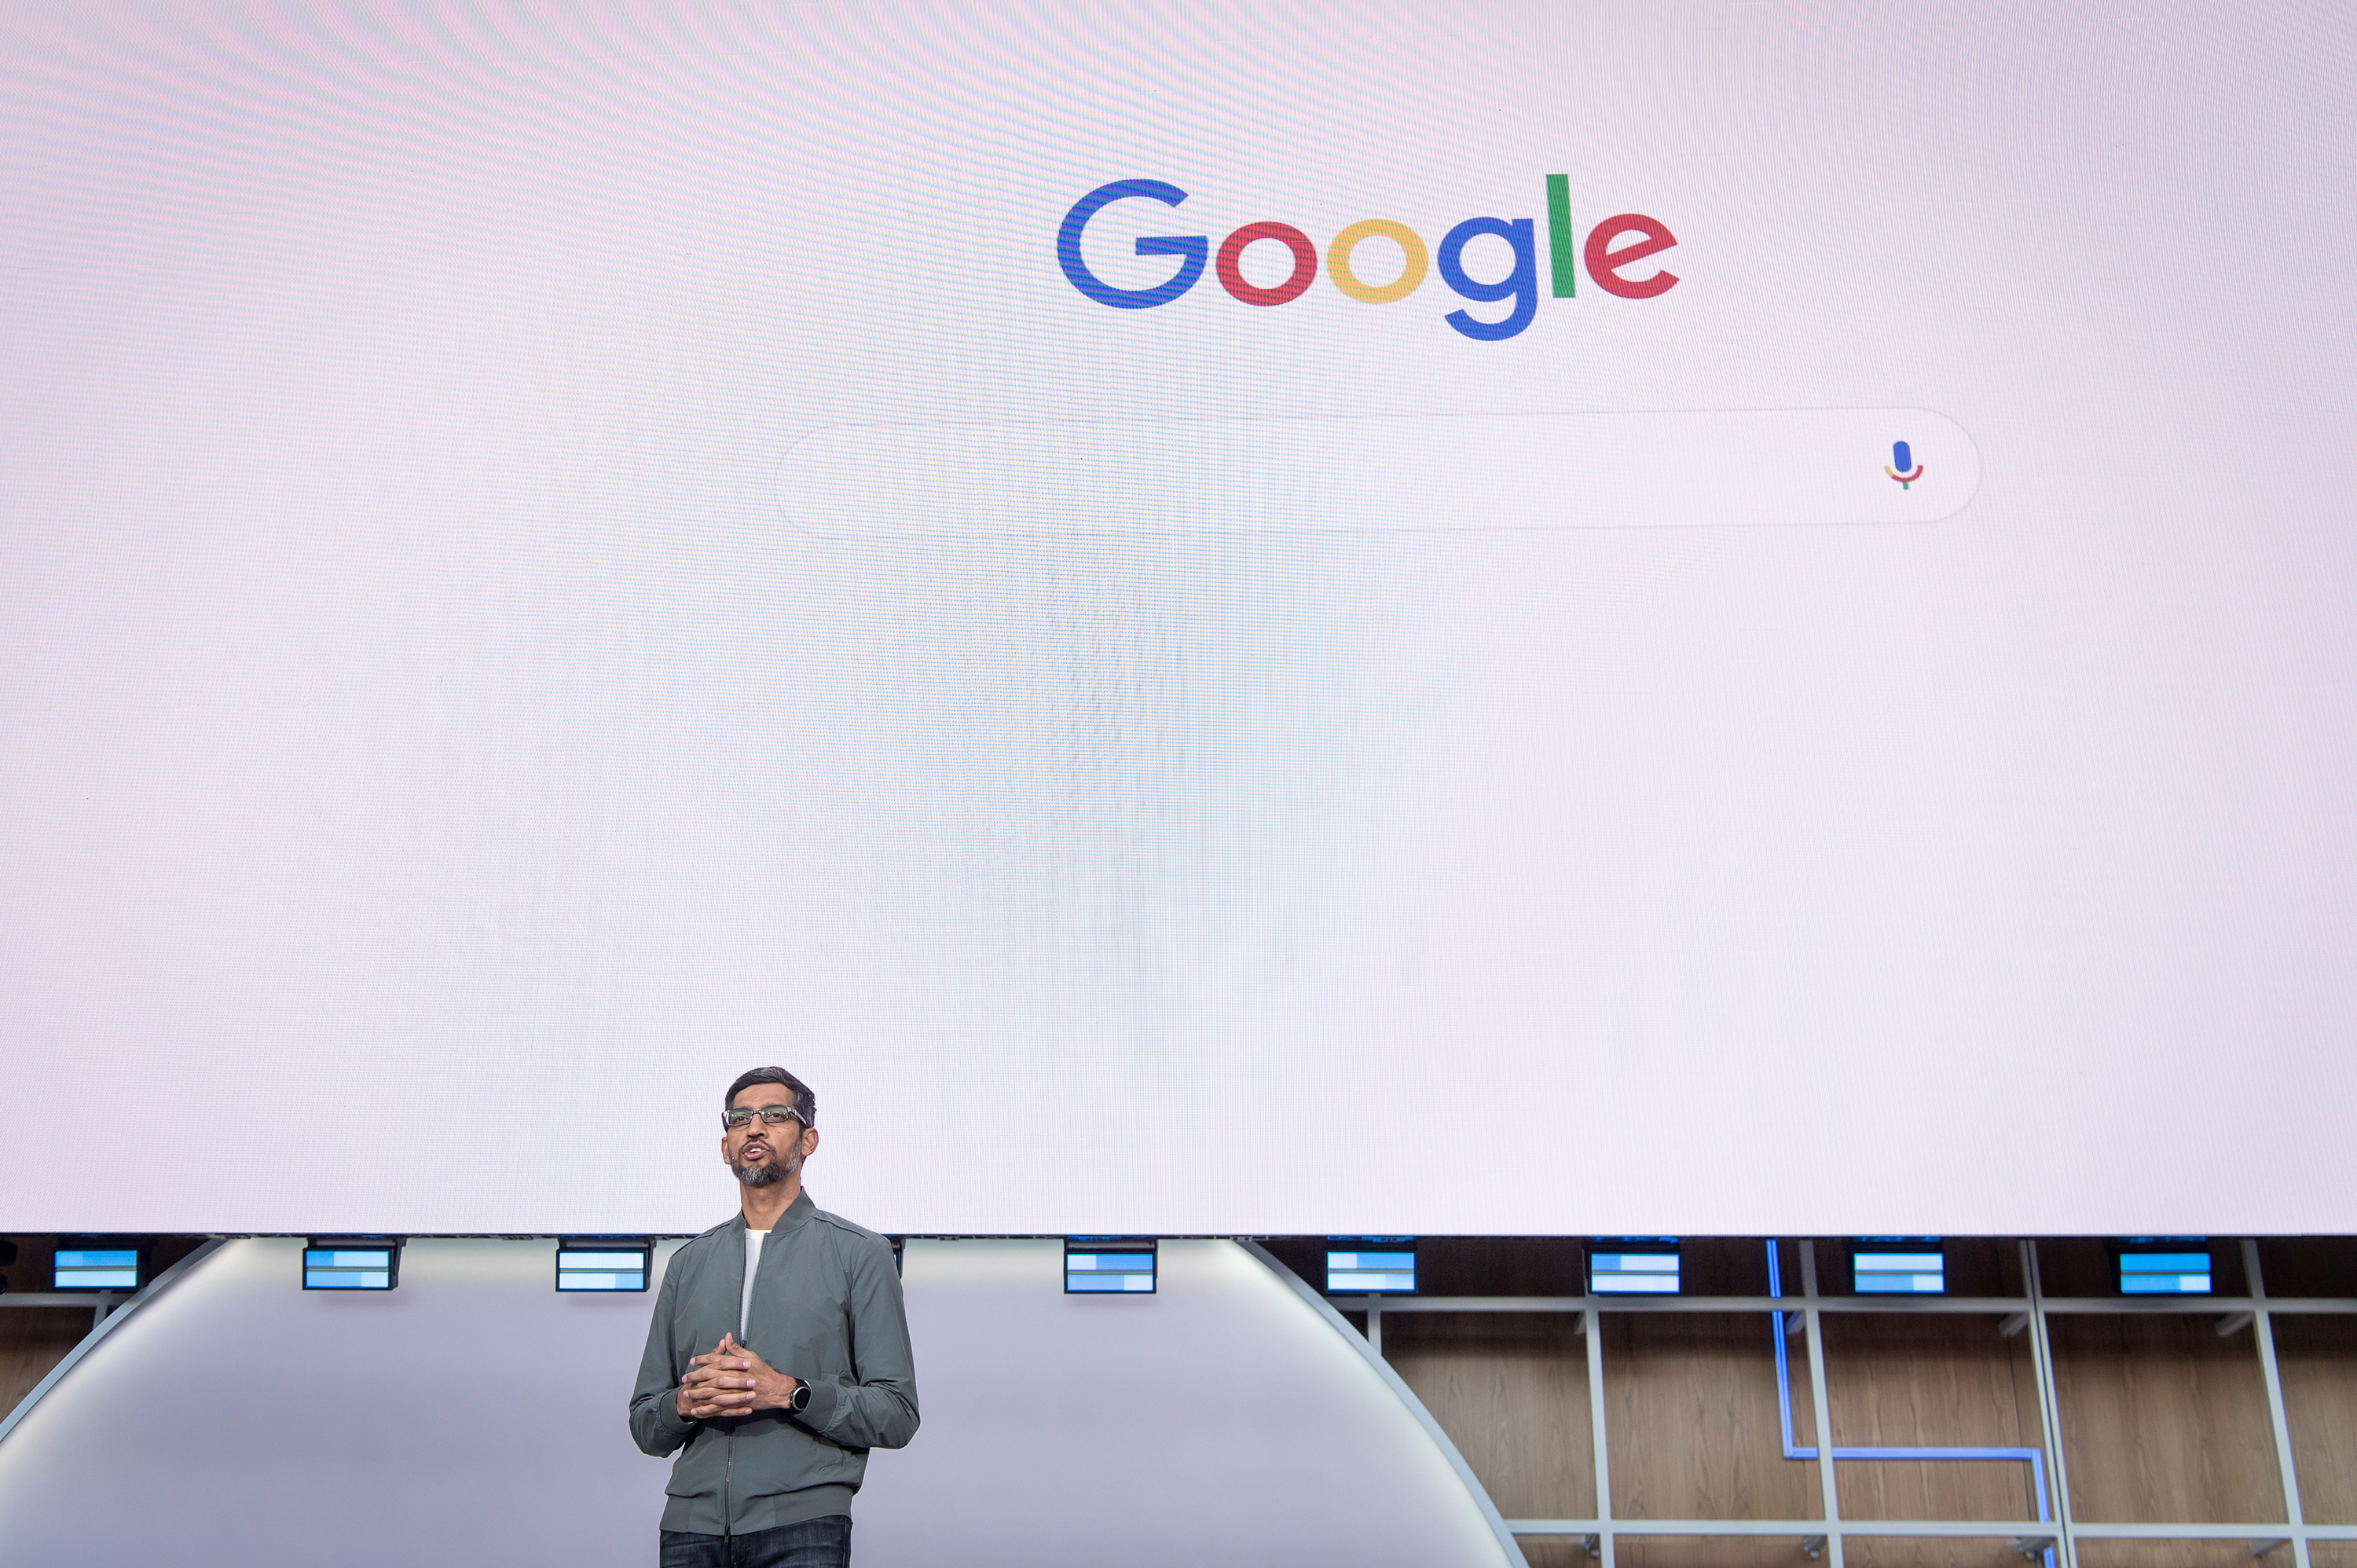 Google is restricting cookies and promising users more privacy